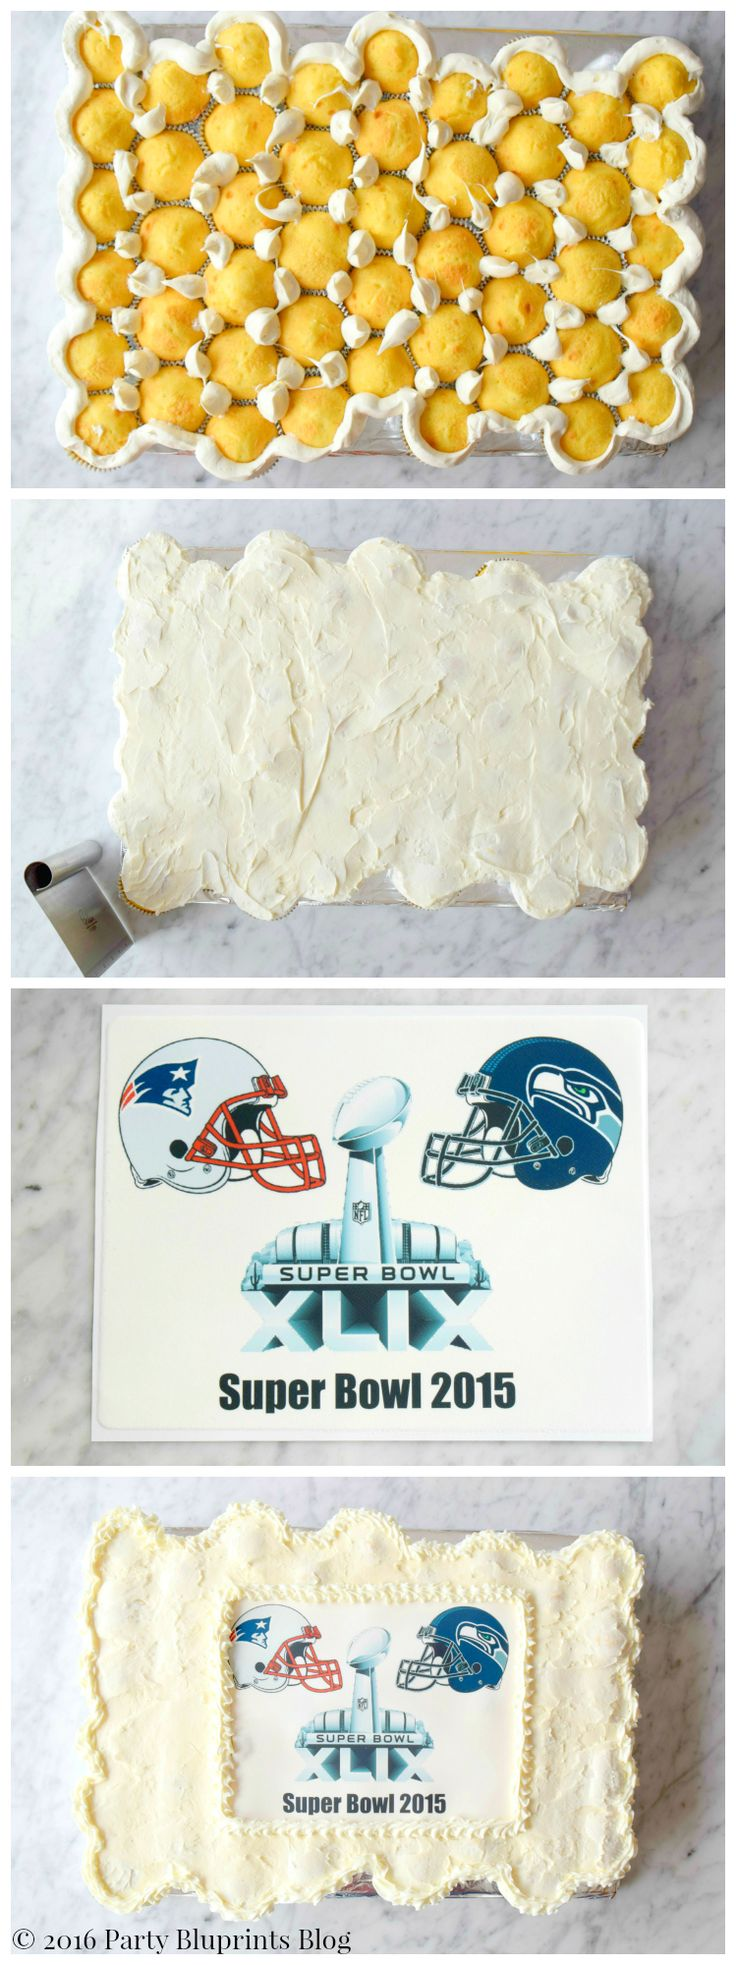 140 best Superbowl Food Ideas images on Pinterest | Cooking recipes ...